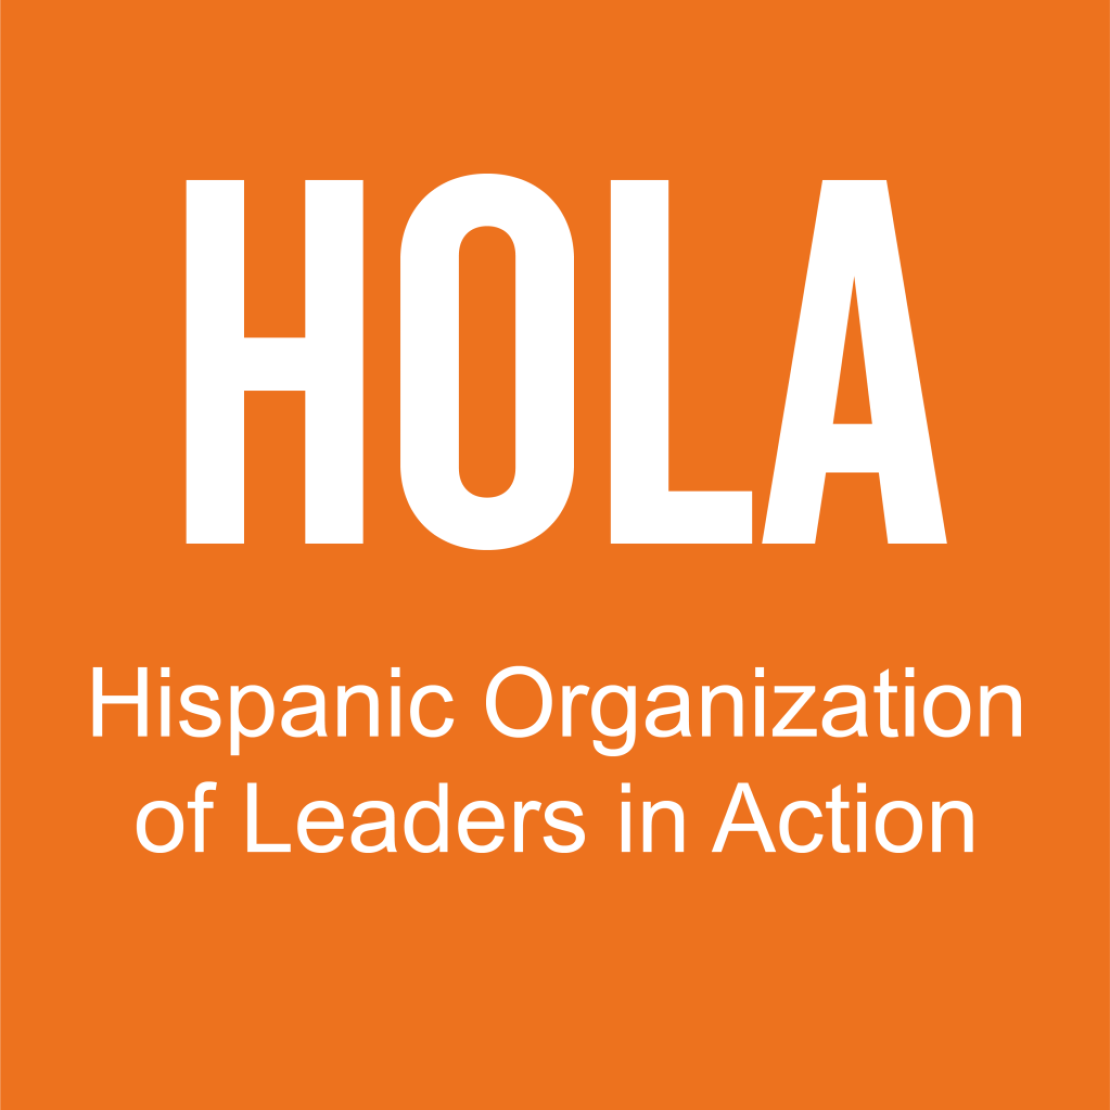 Hispanic Organization of Leaders in Action